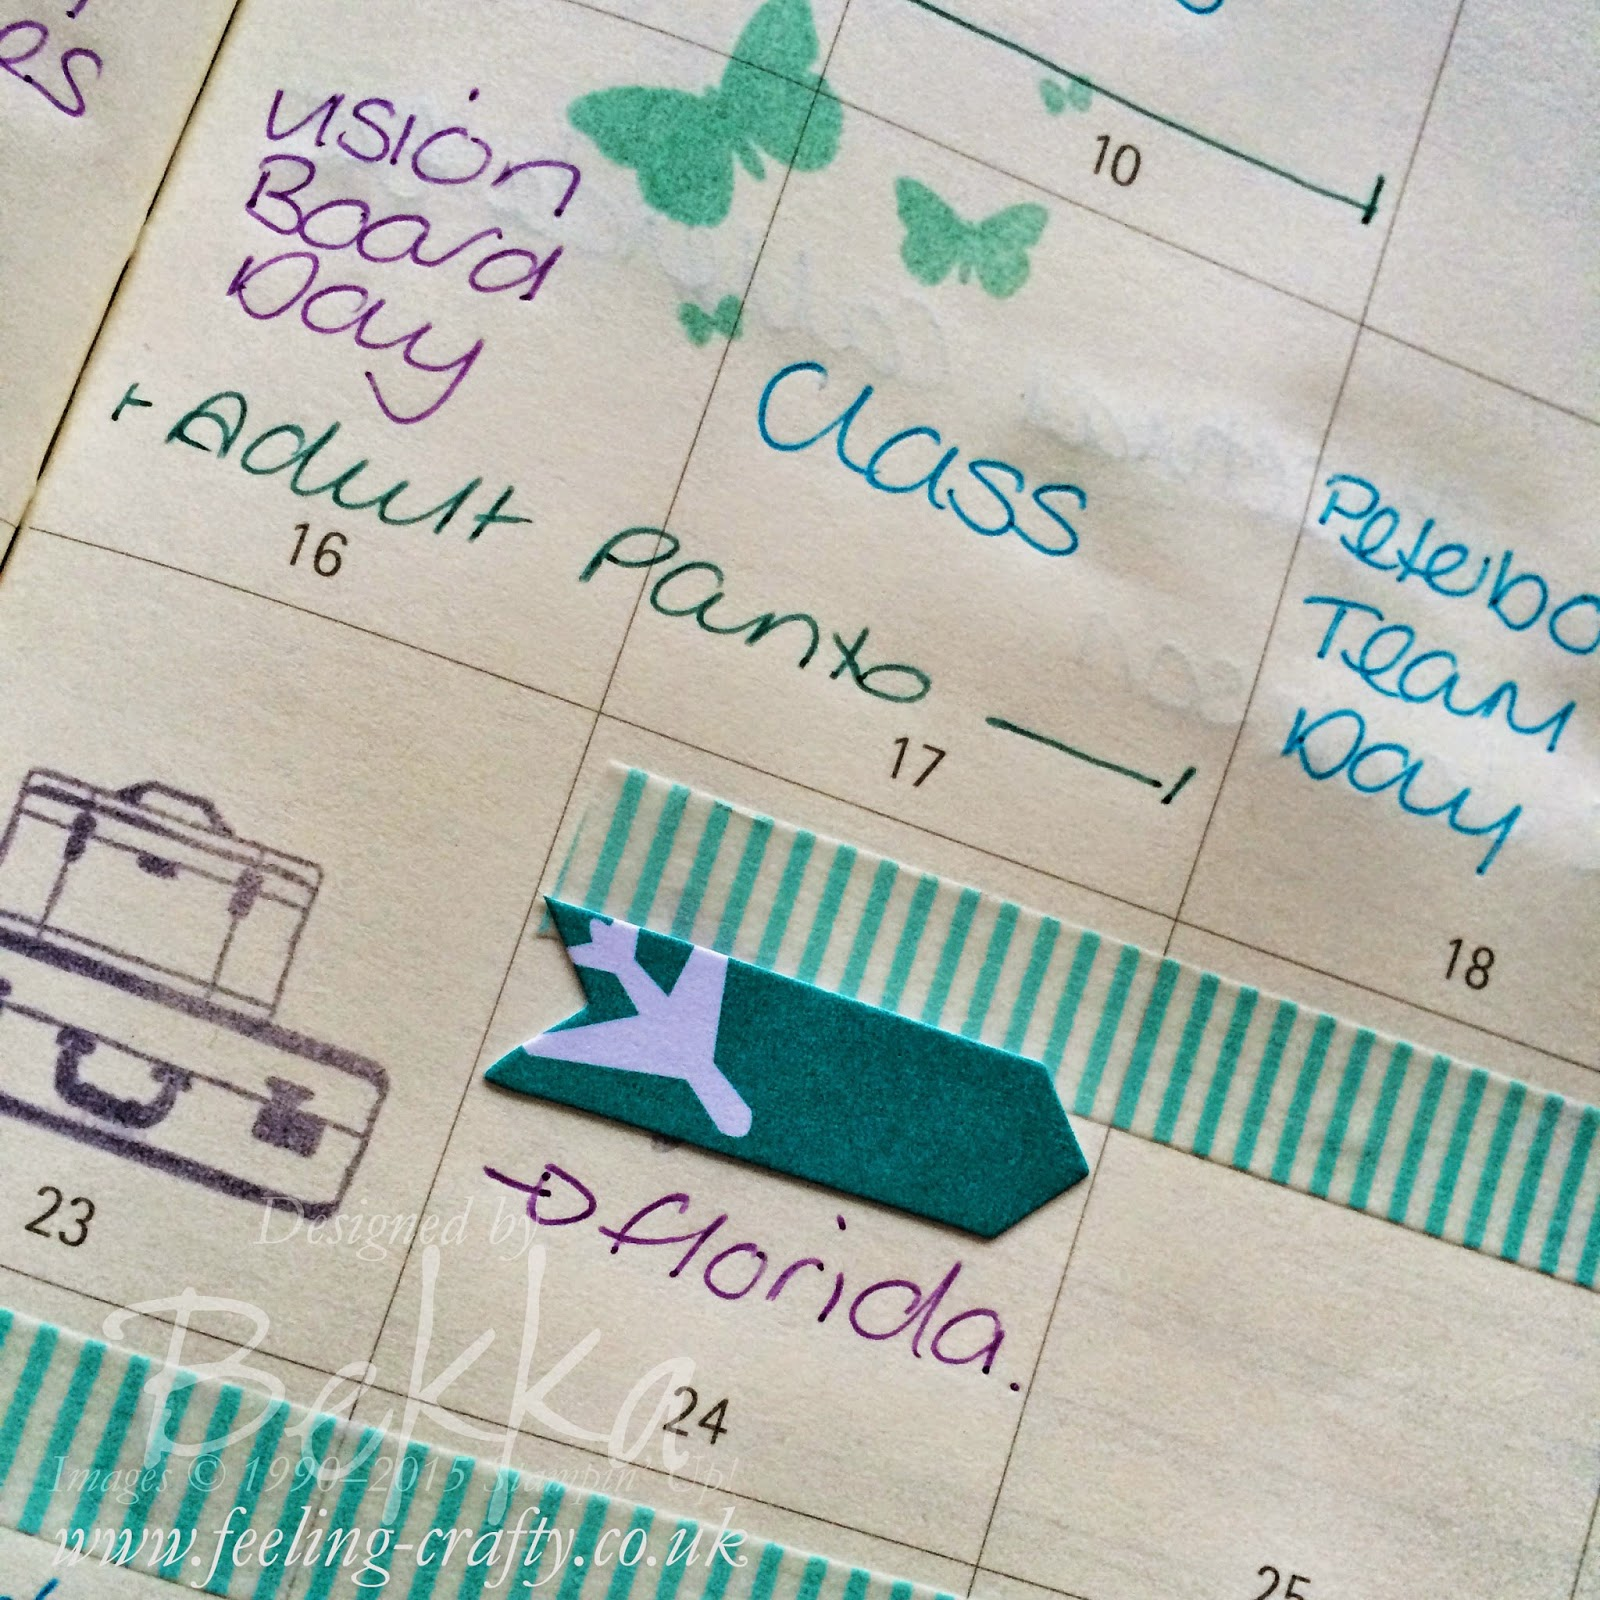 Cutomise your Diary / Planner using Project Life Supplies by Stampin' Up! Get them here